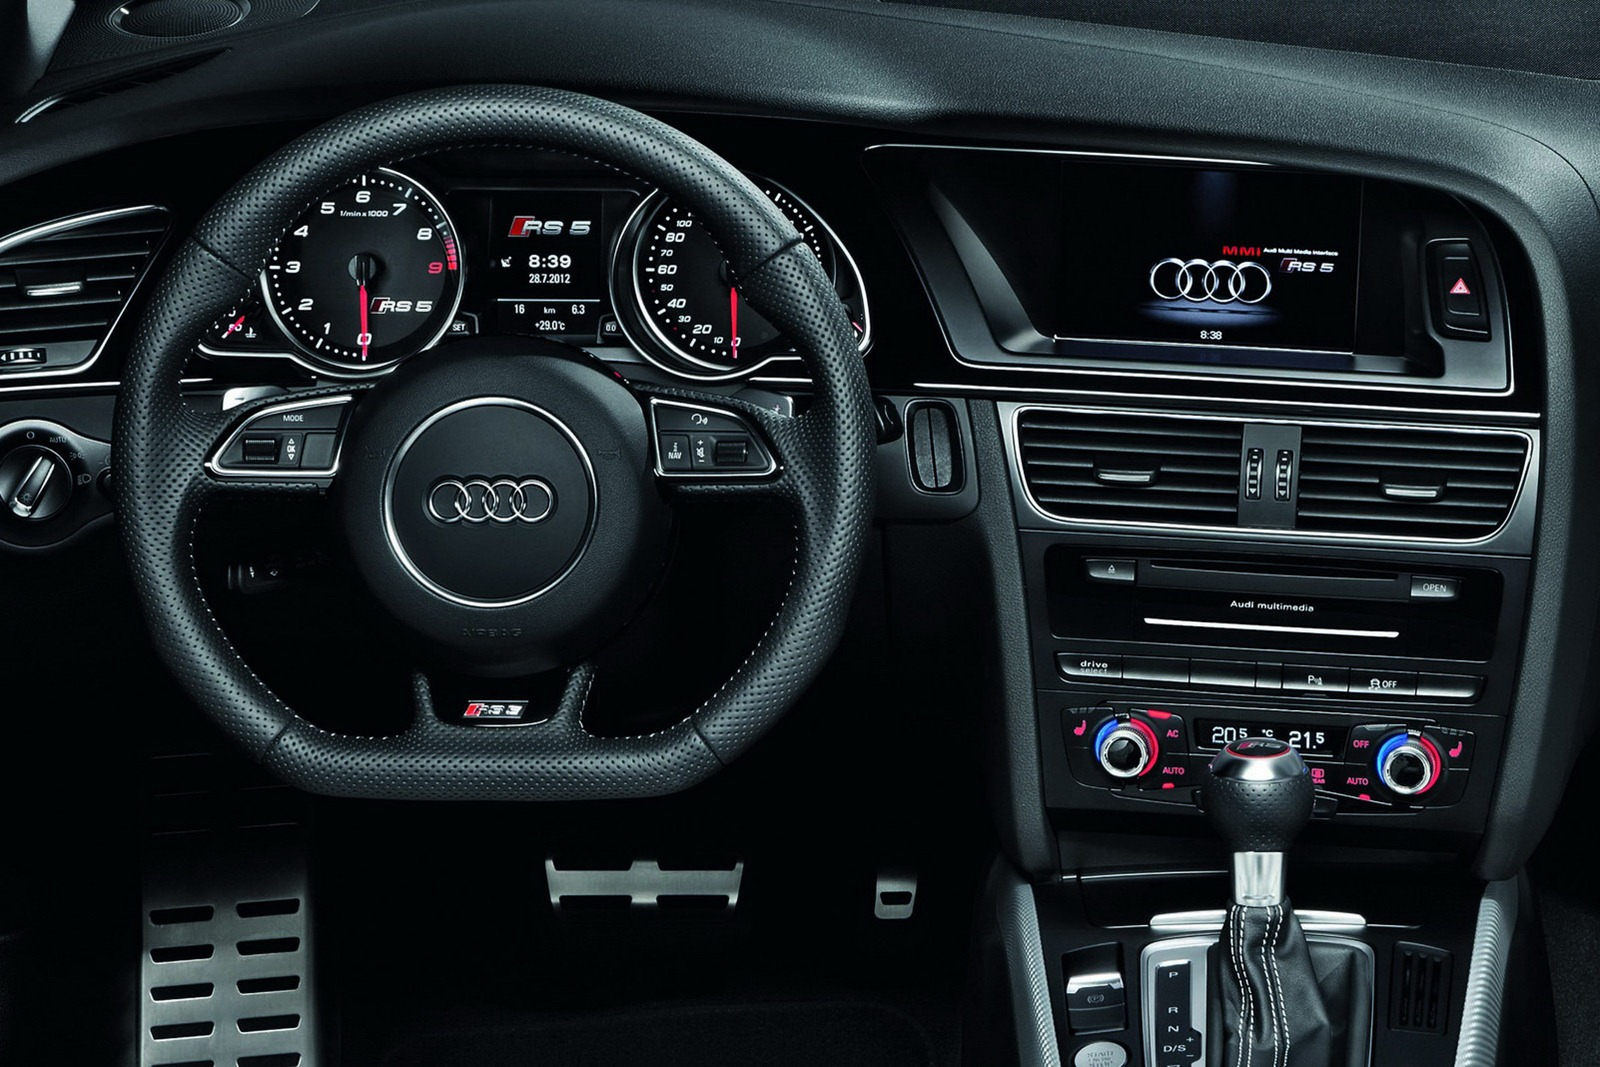 A5 2016 Wallpaper 2013 Audi Rs 5 1600x1067 Wallpaper Teahub Io